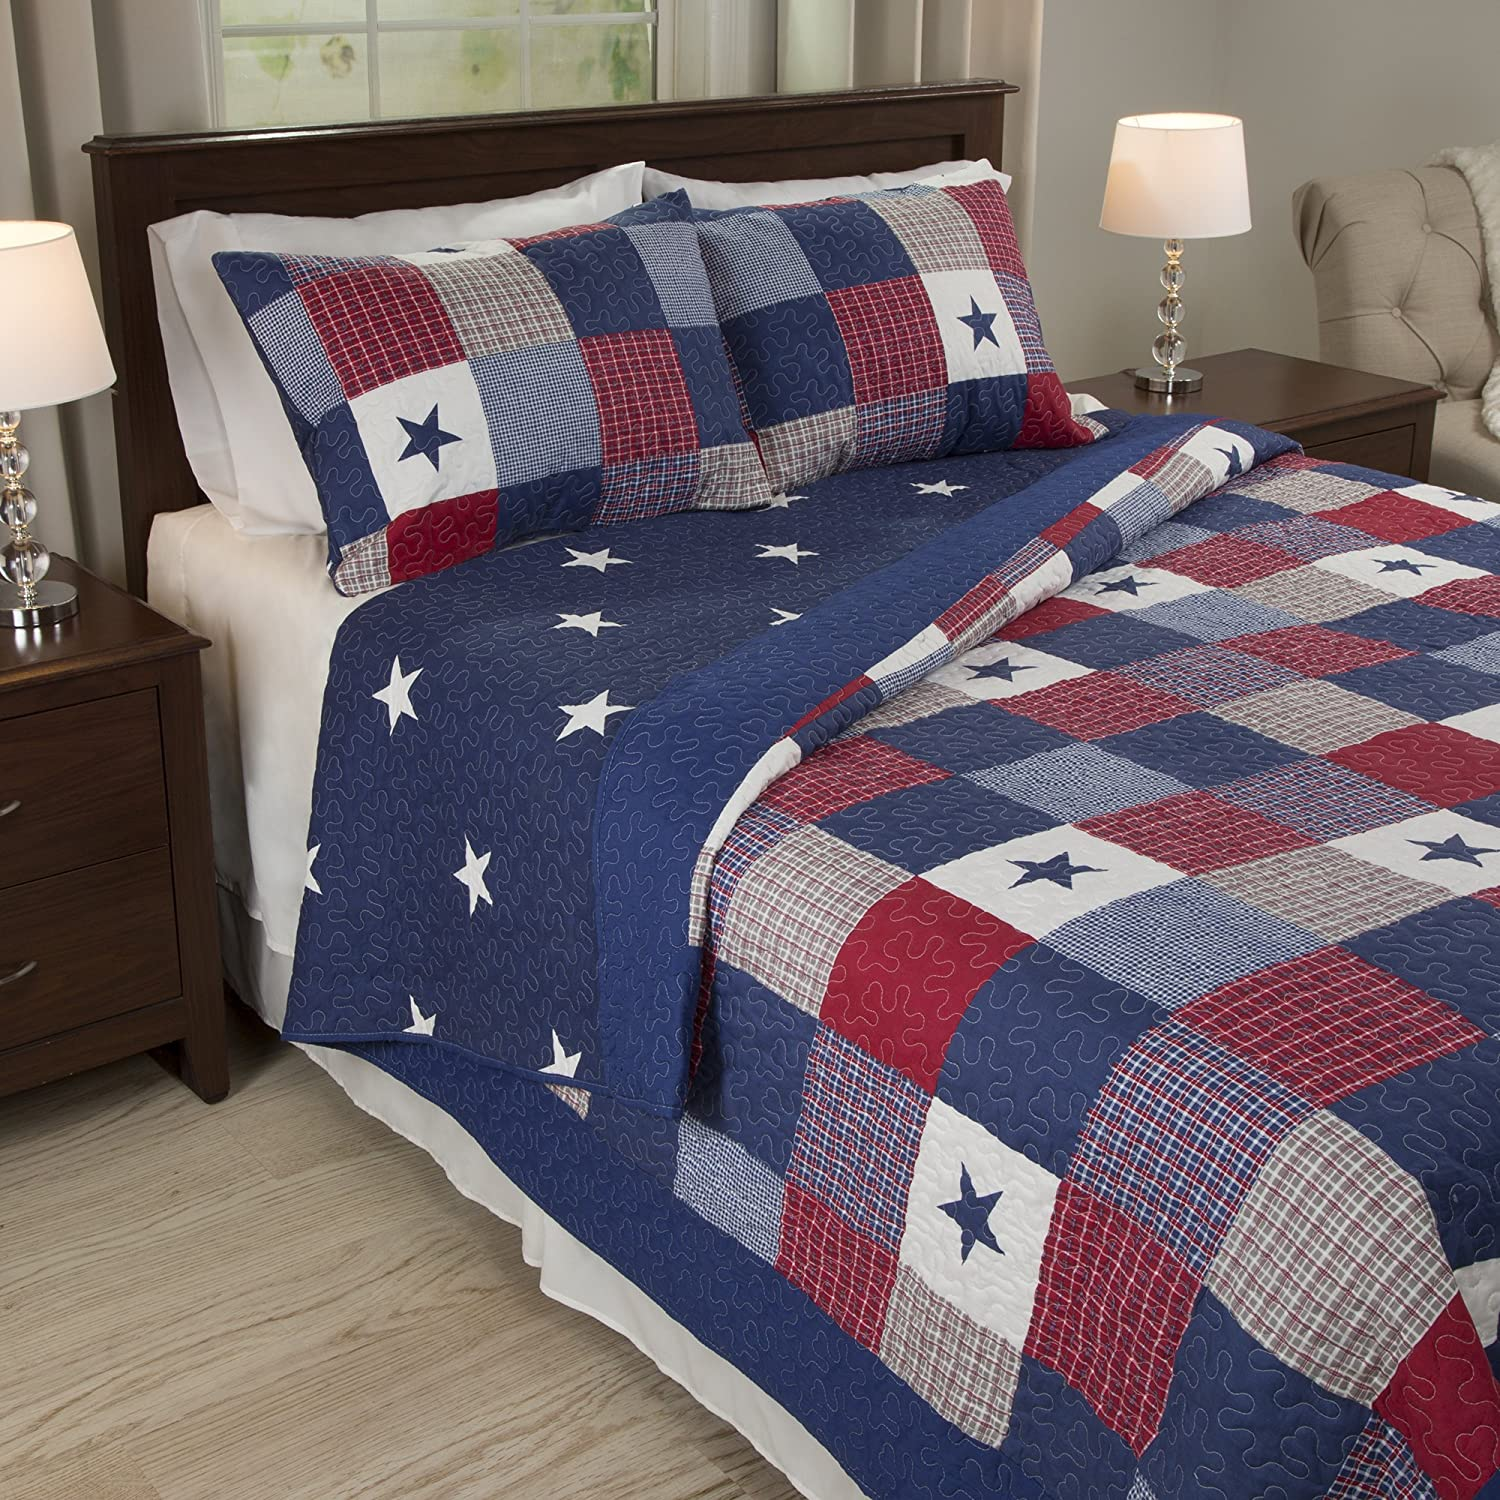 Bedford Home Caroline 3 Piece Quilt Set - Full/Queen